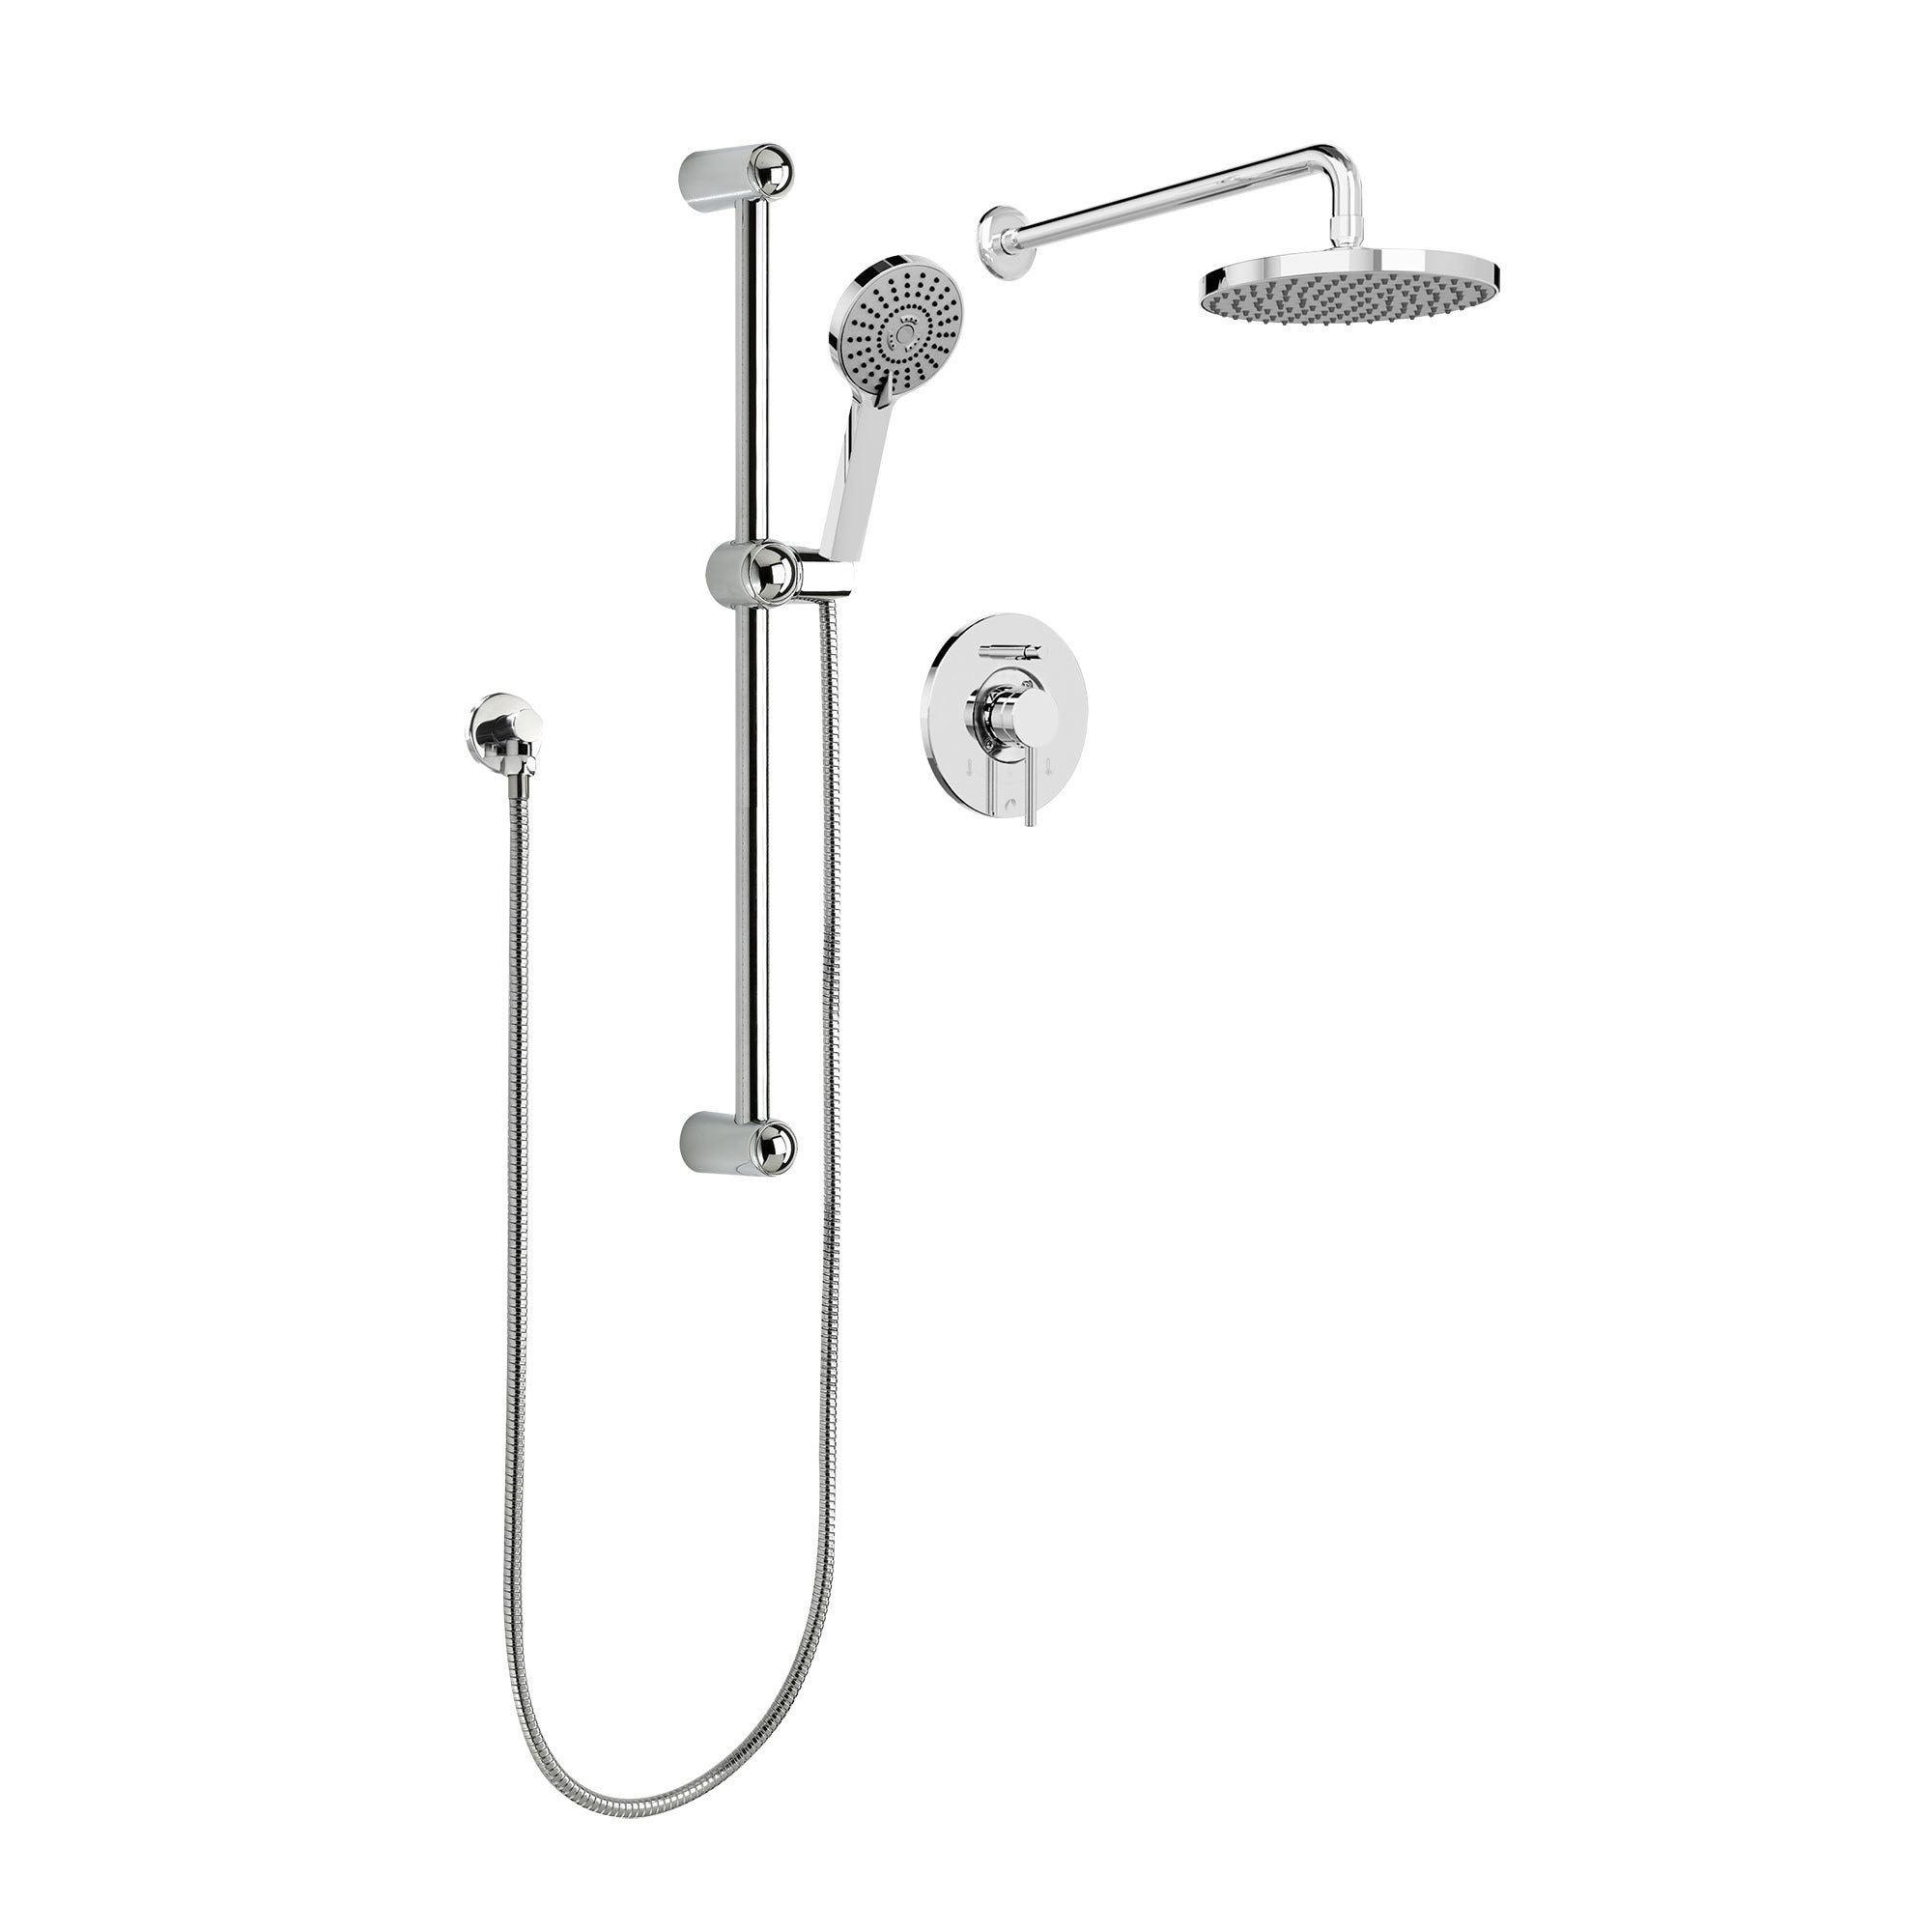 Shop Sleek Round Rain Shower Faucet   Complete Set With Diverter Valve,  Hand Shower Sliding Bar And Shower Head, Polished Chrome   Free Shipping  Today ...